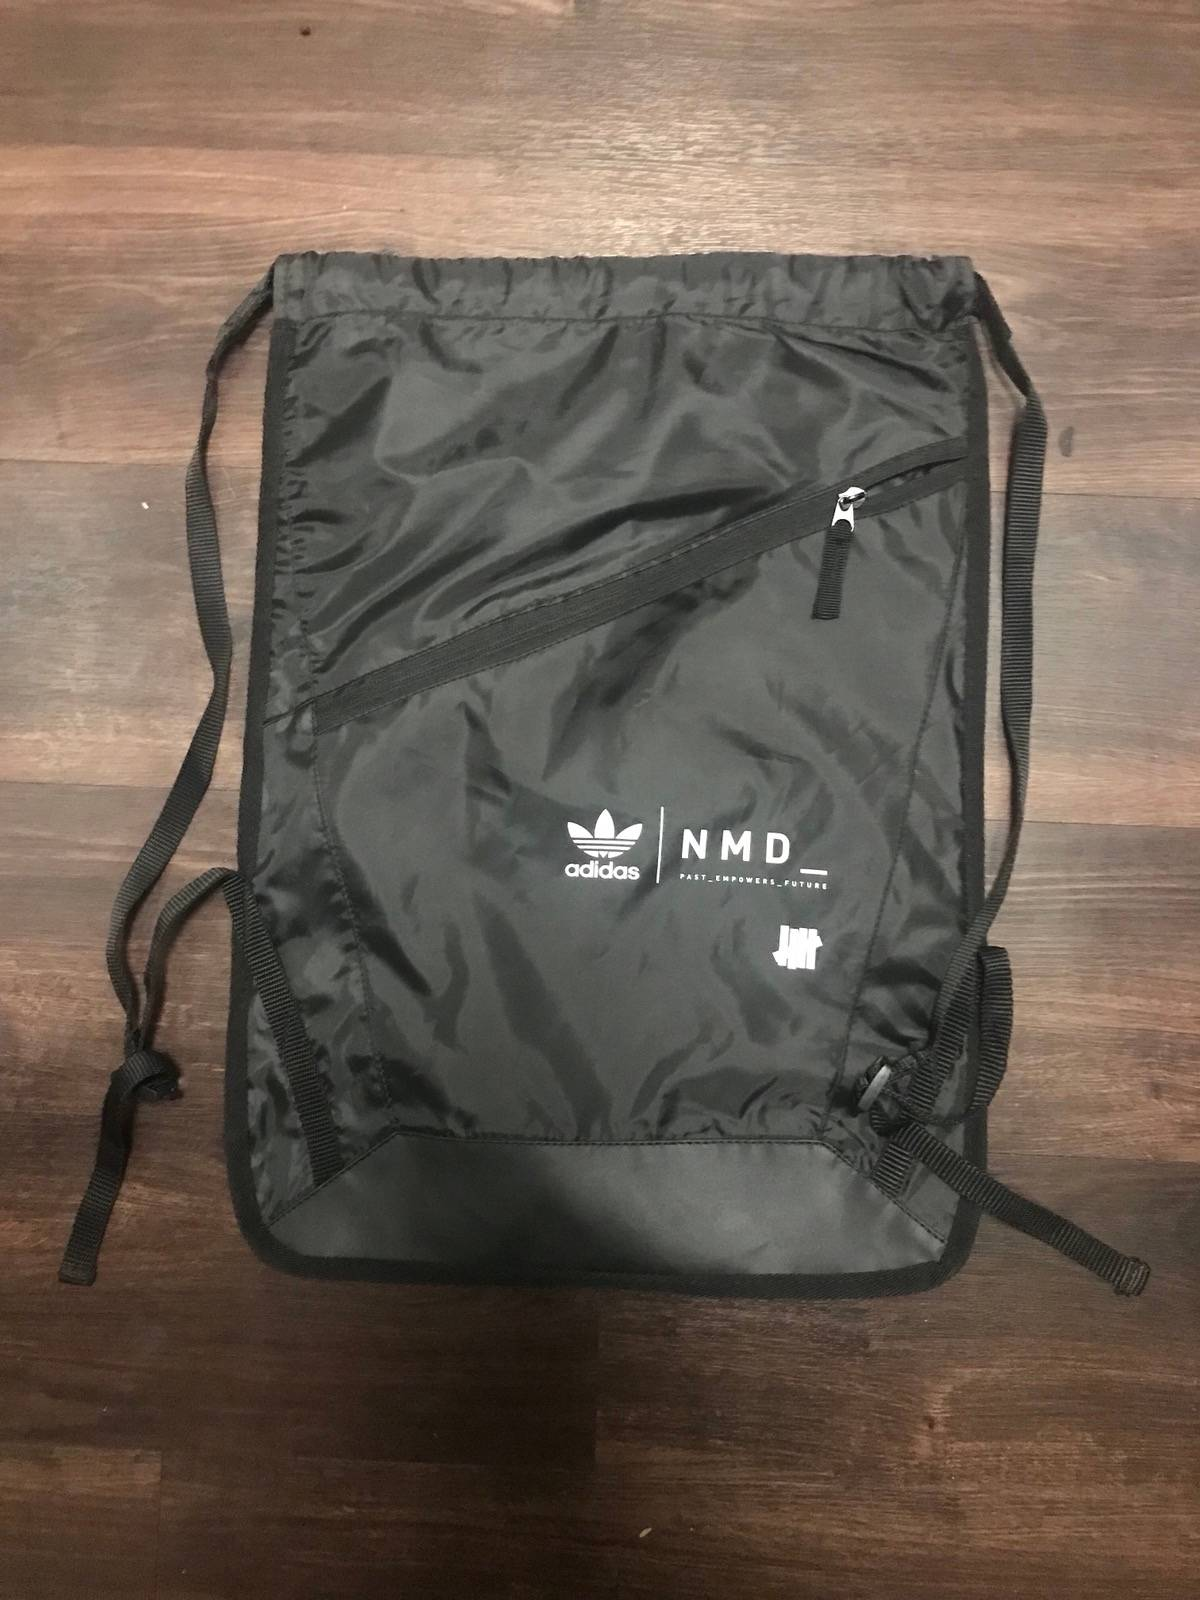 Adidas Adidas Nmd Drawstring Bag Size one size - Bags   Luggage for Sale -  Grailed e813eb462f2c8